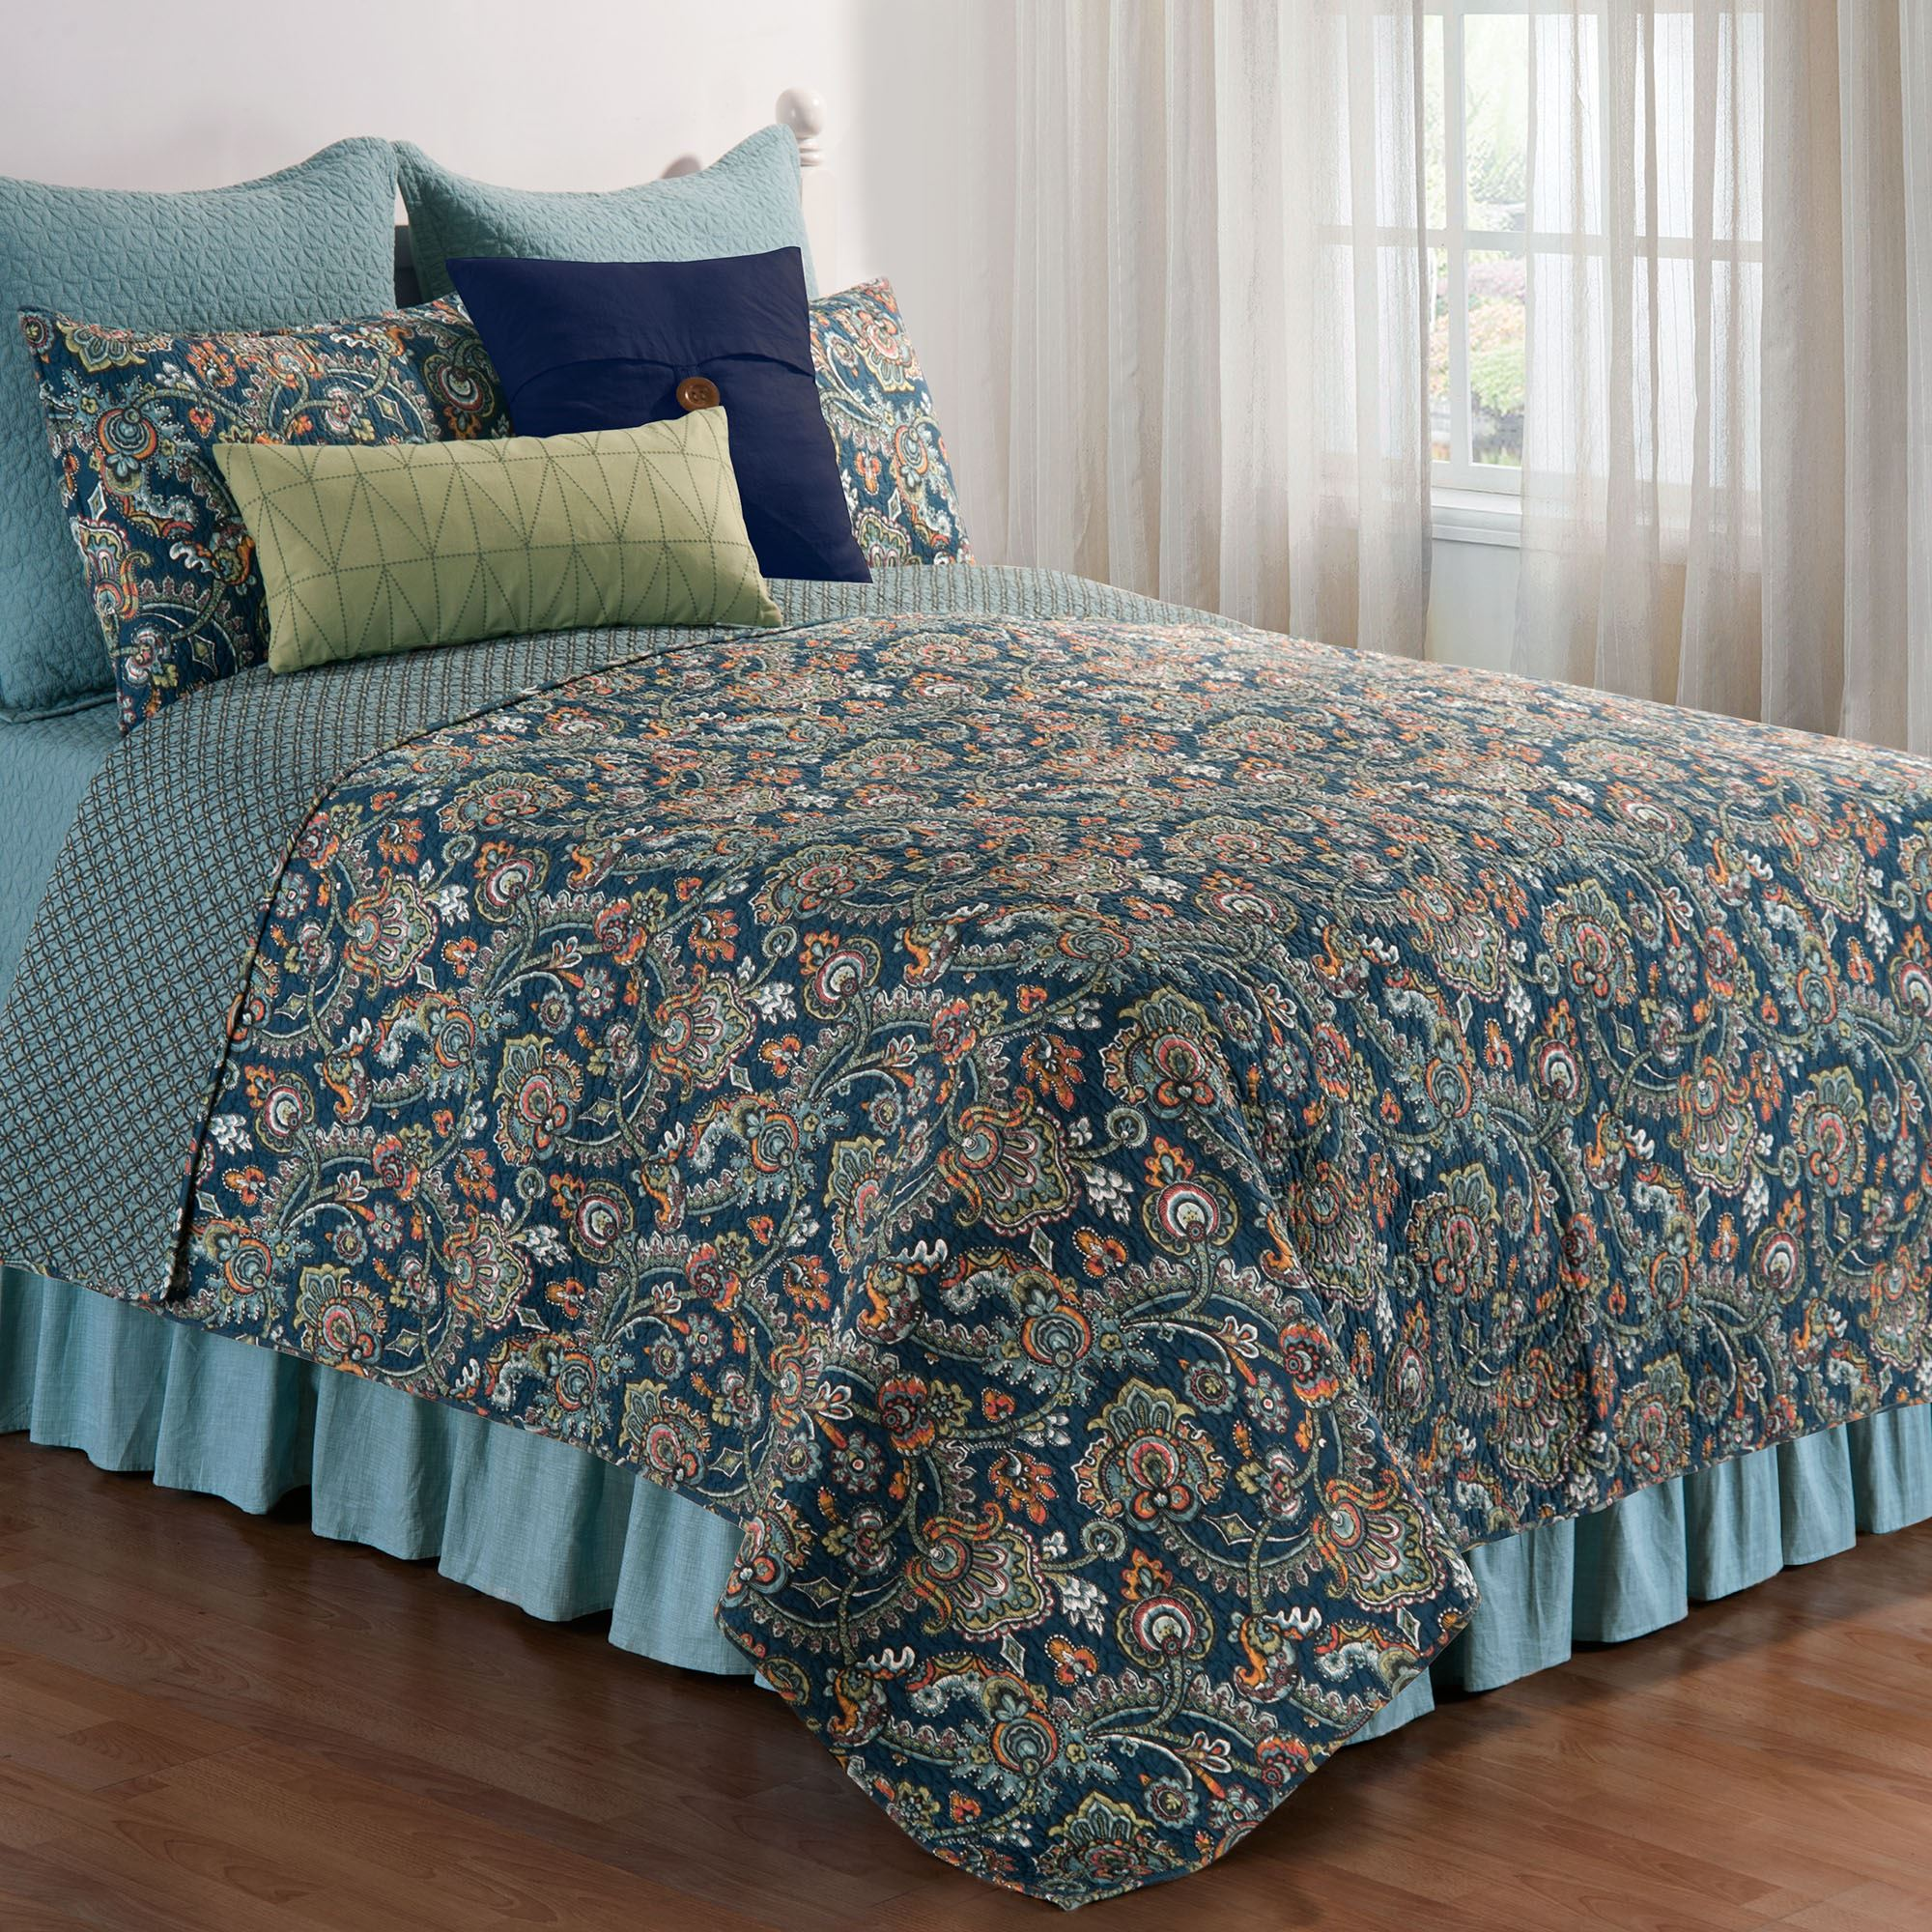 anthropologie for with piece king on pics bedding bedroom grey multi crate blue wonderful walmartcom color duvets full duvet striped coral navy covers stunning of navycoral crib il zoom dark and comforter boys size set sheets colored quilt sets cover insert nesco fullxfull barrel linen